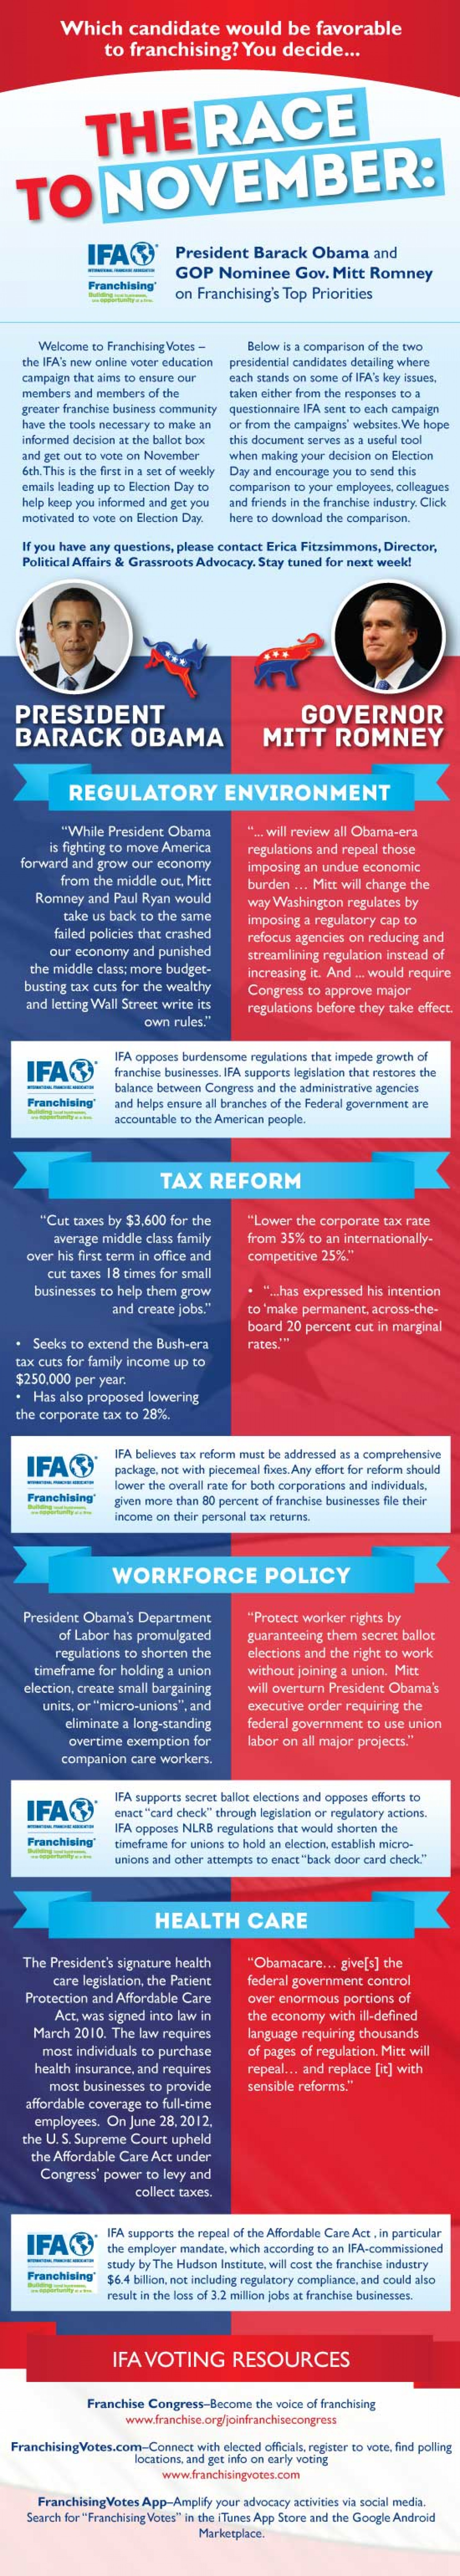 Romney or Obama...Which Candidate Would be Favorable to Franchising? Infographic